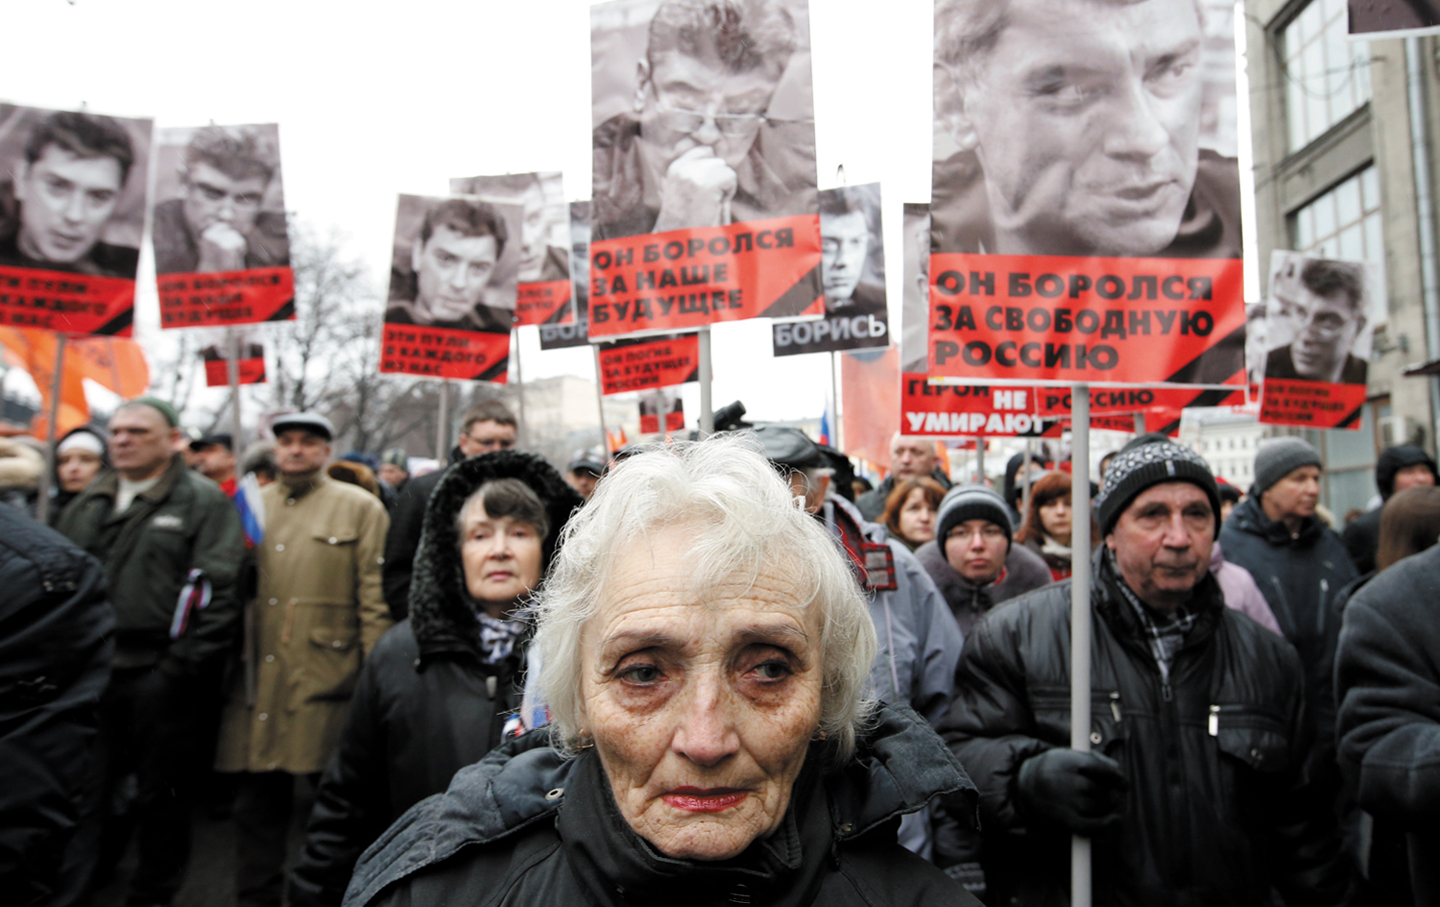 Snapshot-Protesting-Assassination-in-Moscow